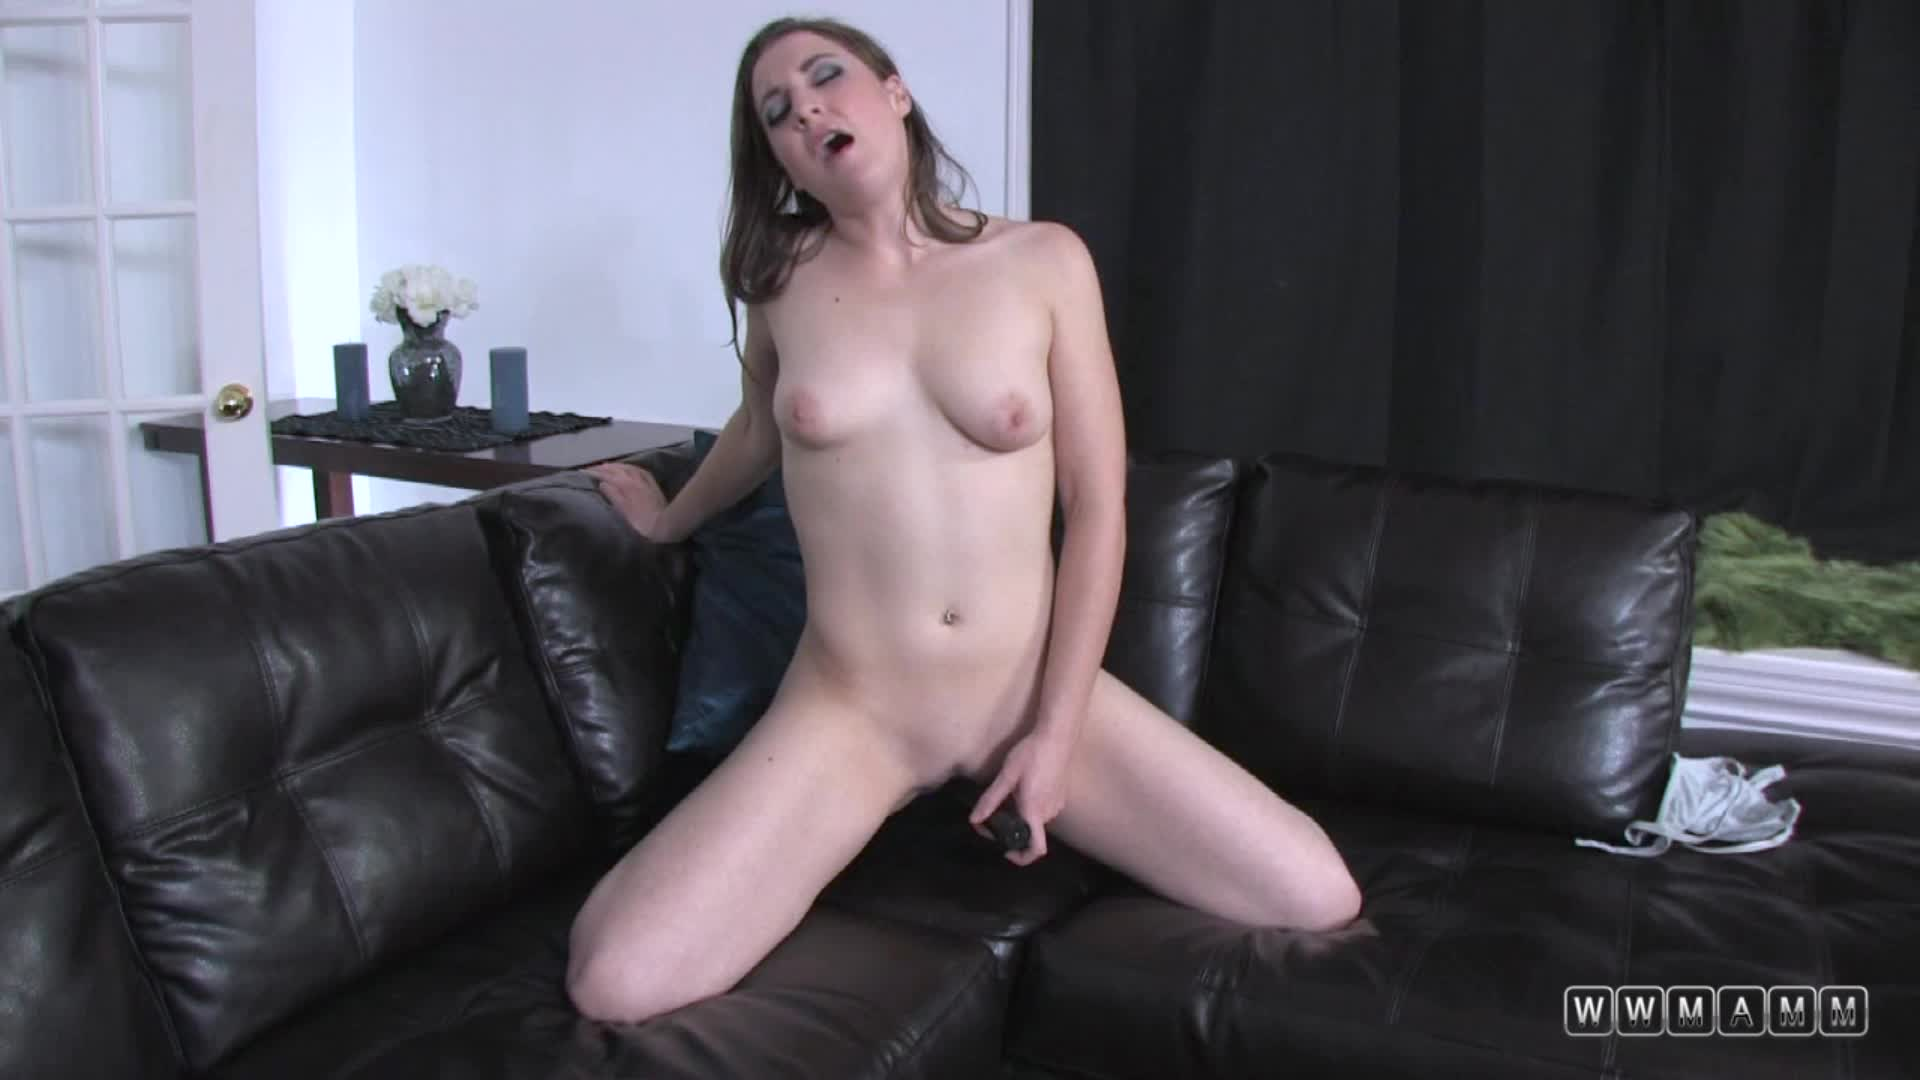 Her Small Black Vibrator Turned Around This Boring Late Evening